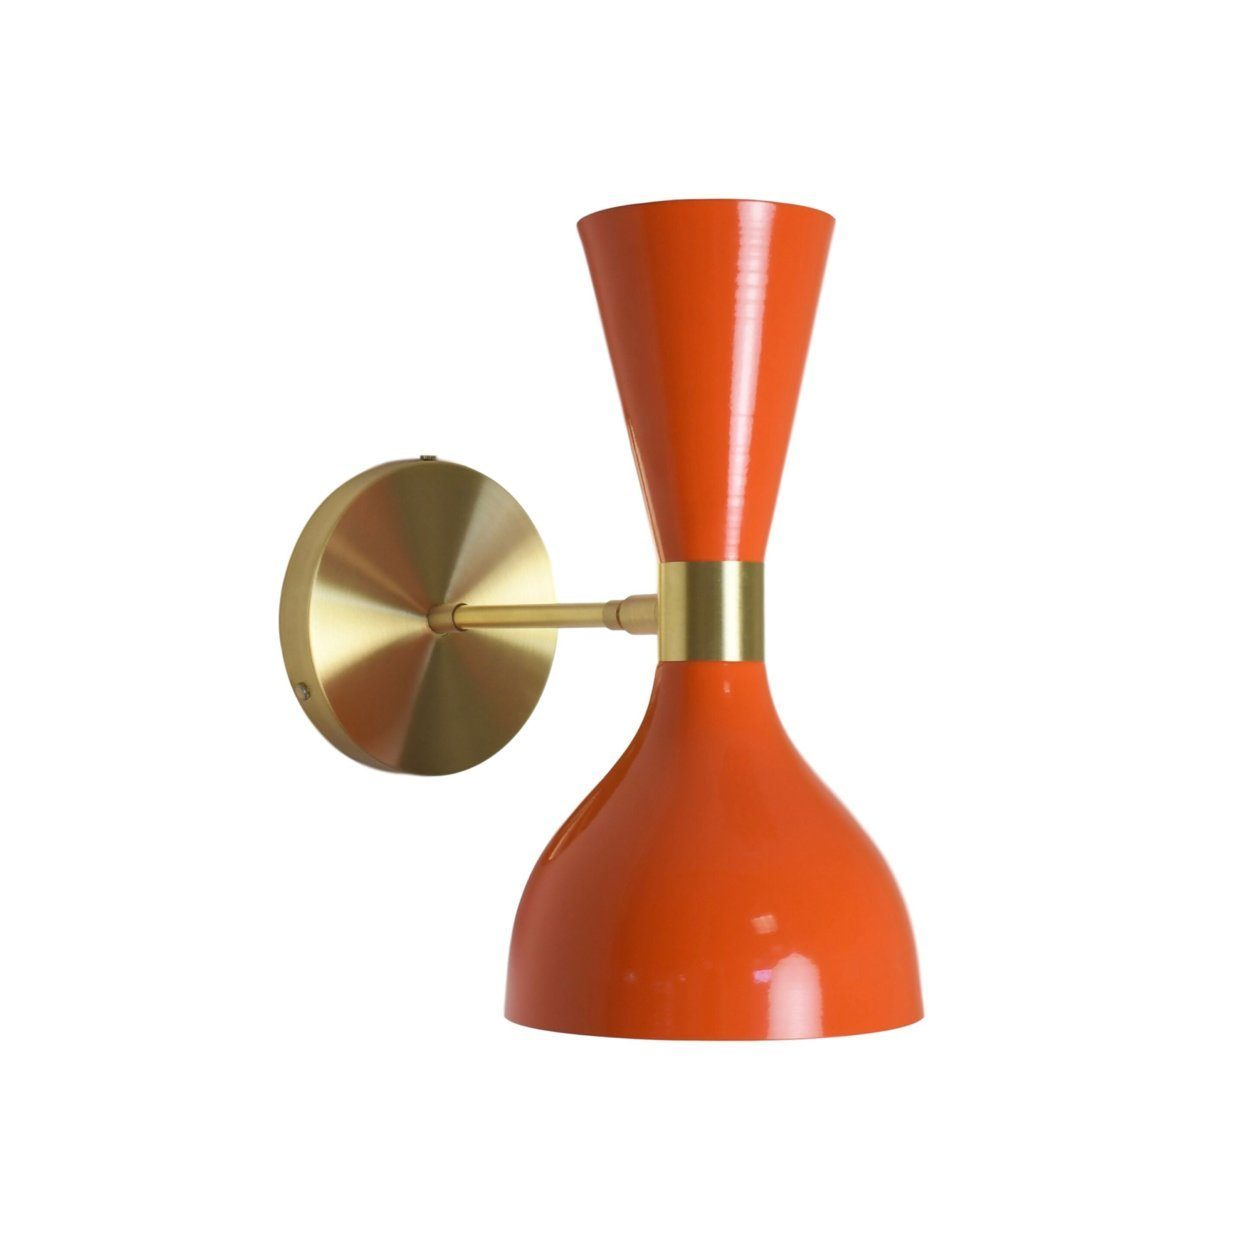 <p>This undated photo shows Blueprint Lighting&#8217;s Ludo wall sconce. The shape of a wine glass inspired the sconce in tangerine is shown here. The fixture&#8217;s terracotta-hued enameled finish contrasts nicely with the articulating brass arm. Terracotta blends well with many metal tones and finishes. (Blueprint Lighting via AP)</p>